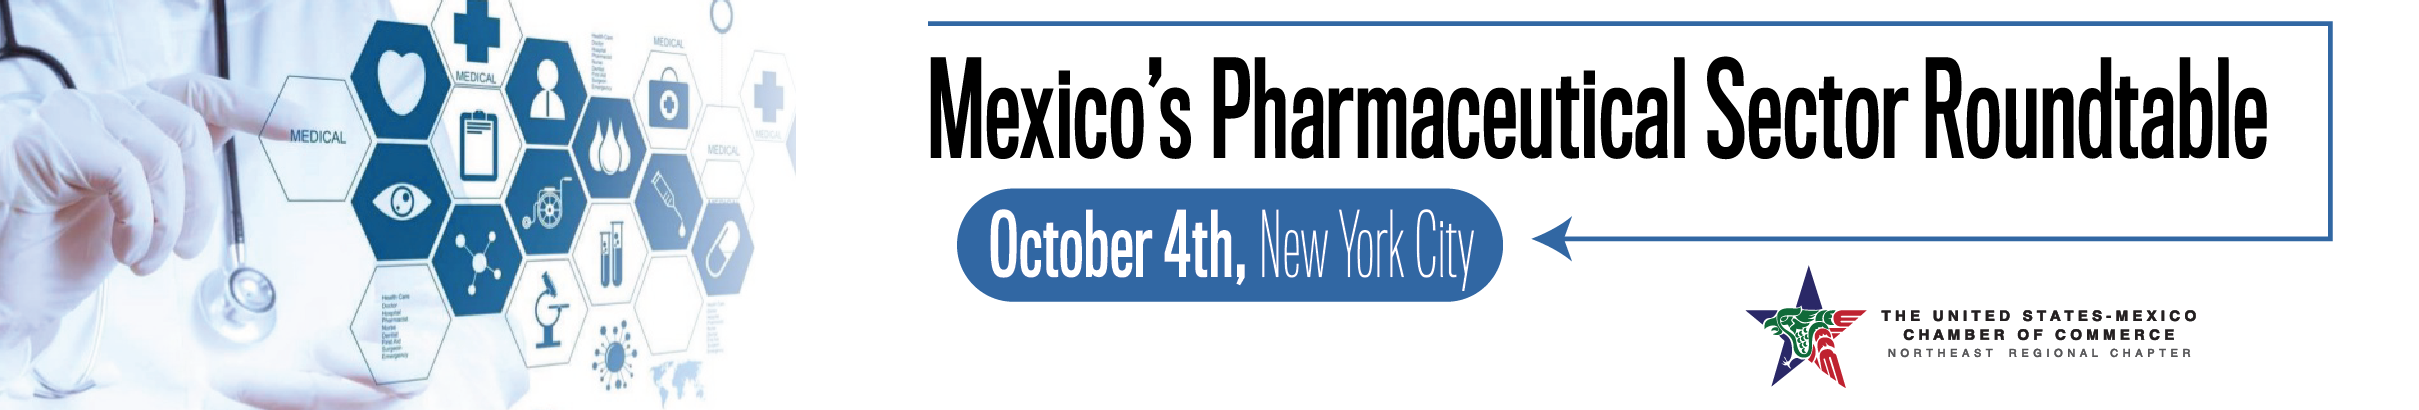 Mexico's Pharmaceutical Sector Roundtable